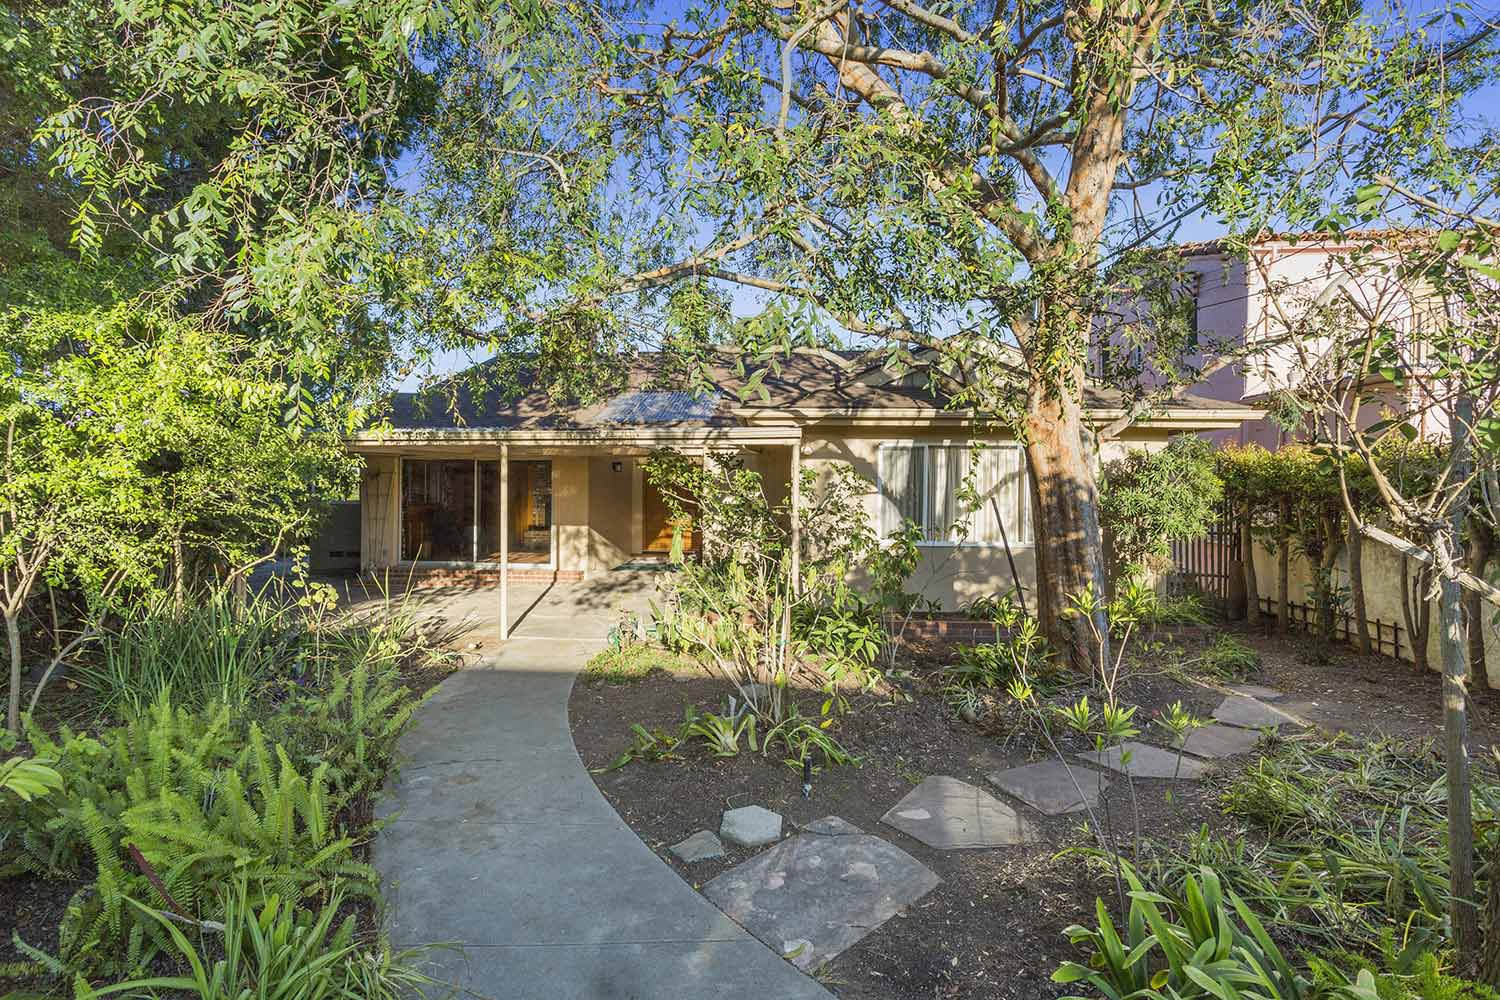 659 Erskine Dr,Pacific Palisades,California 90272,3 Bedrooms Bedrooms,2 BathroomsBathrooms,Home,Erskine Dr,1023